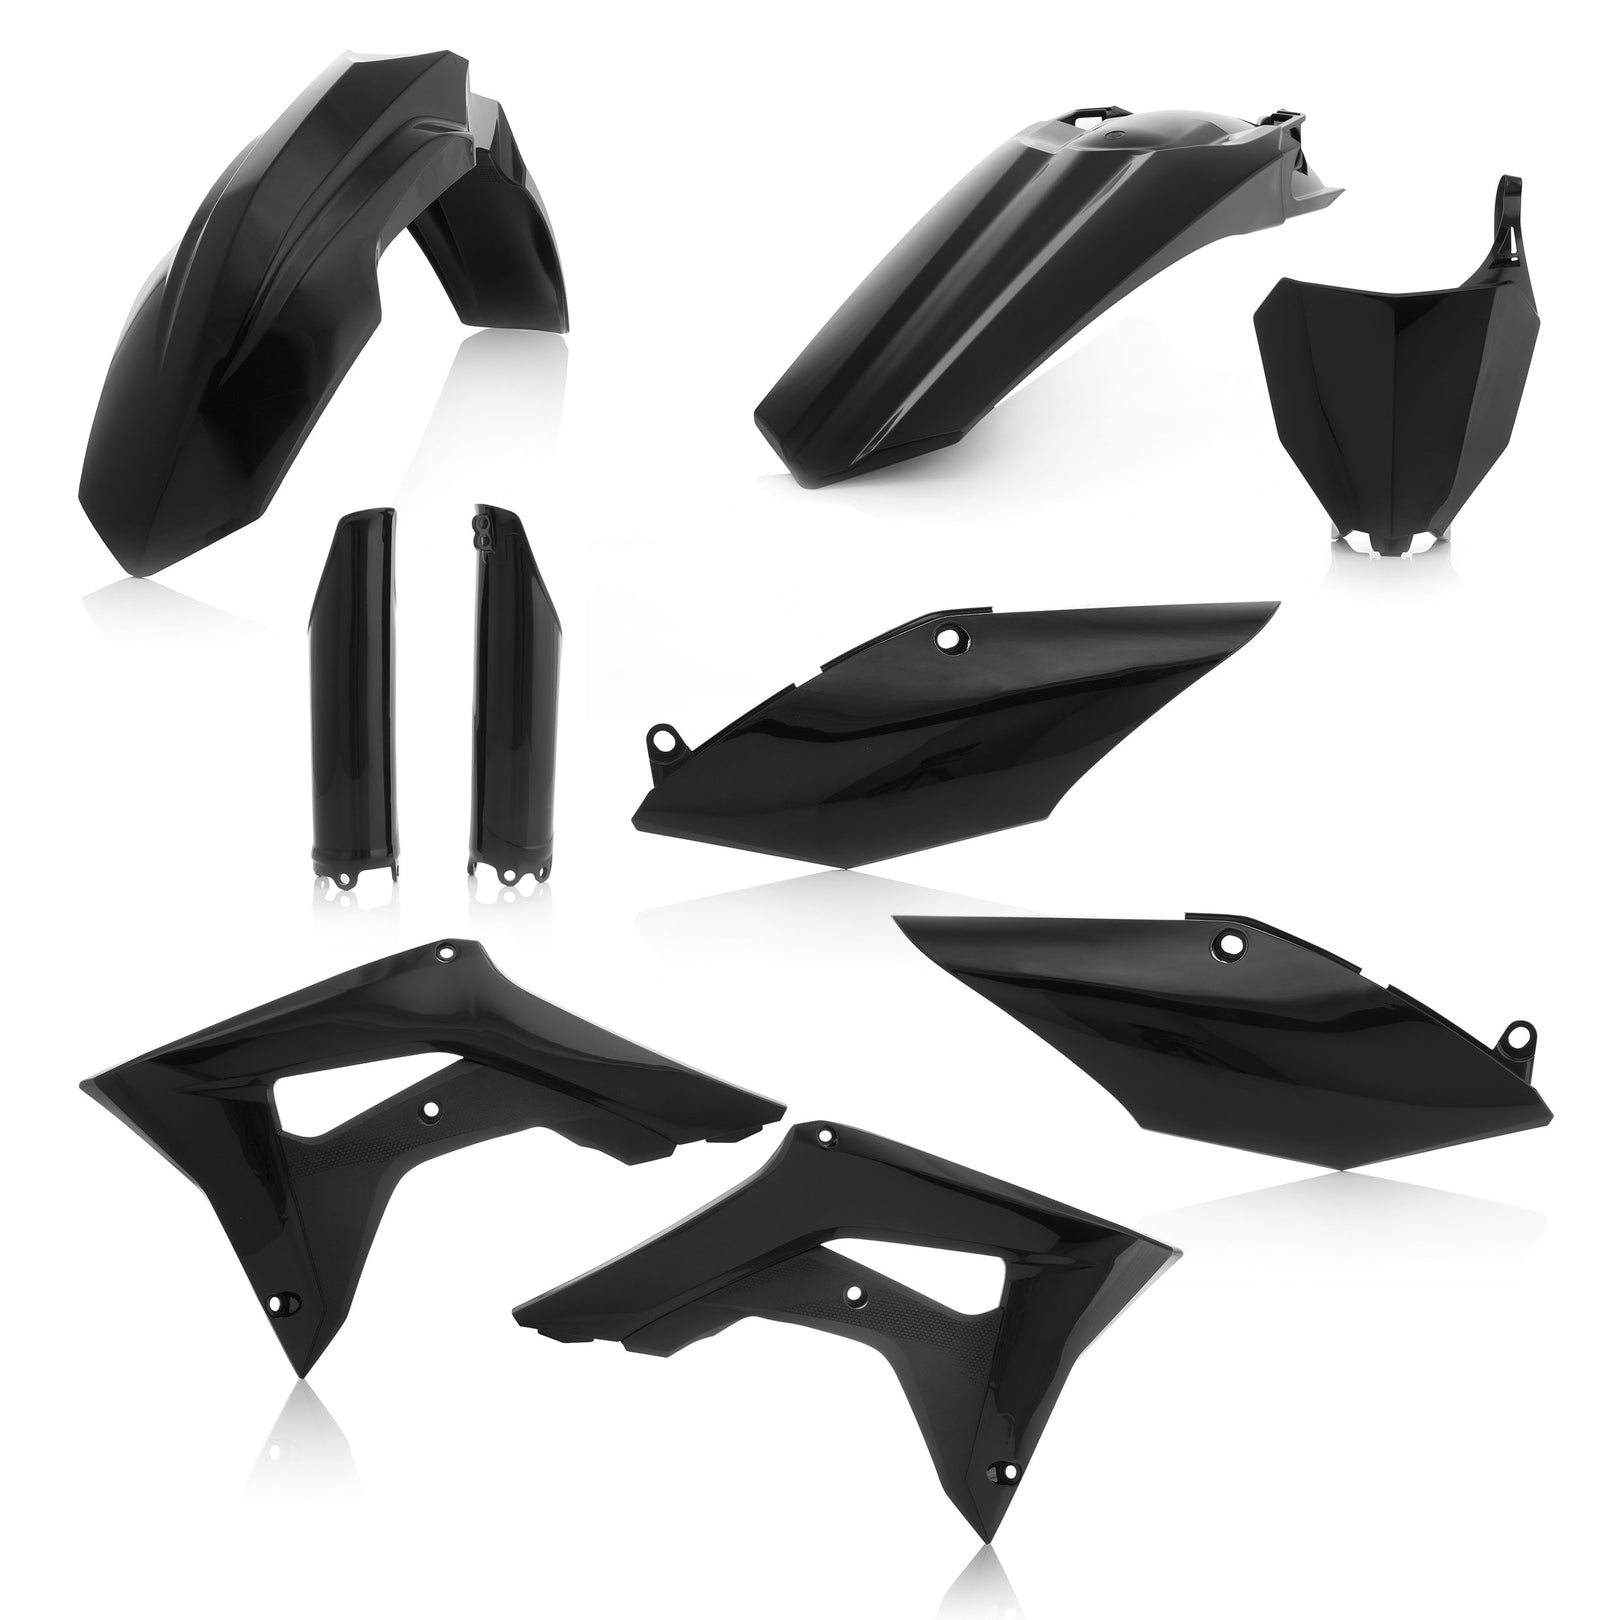 FULL PLASTIC KIT for HONDA - BLACK - CRF250R: 18, CRF450R: 17-18 - Acerbis